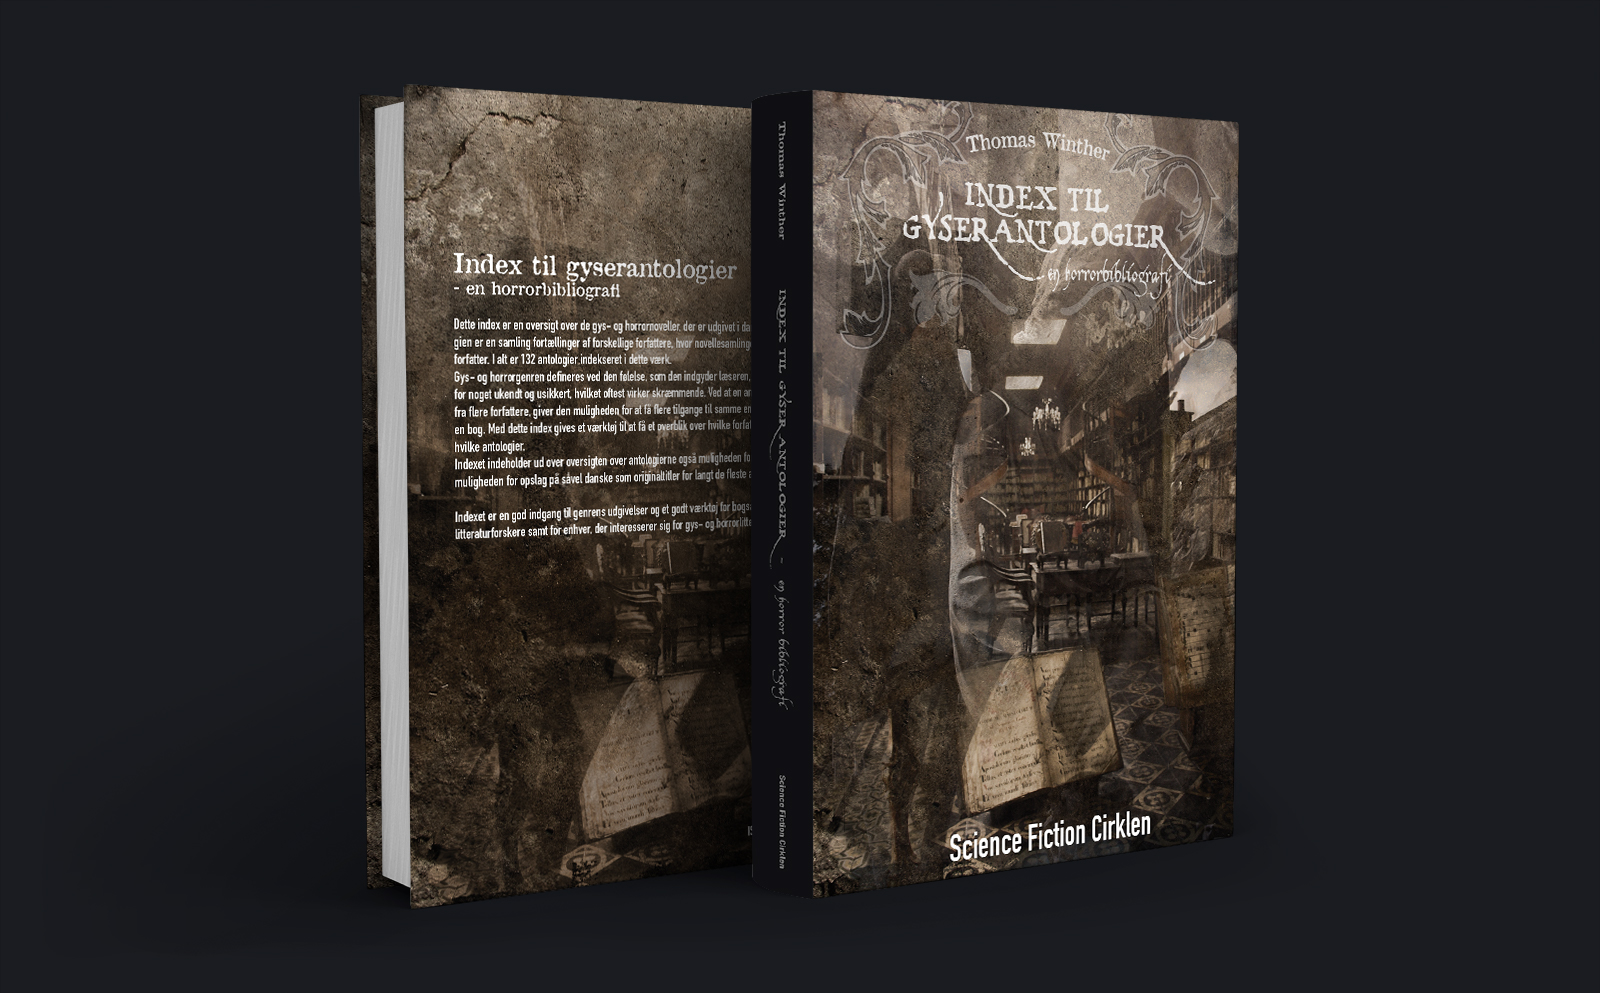 Book cover design and illustration